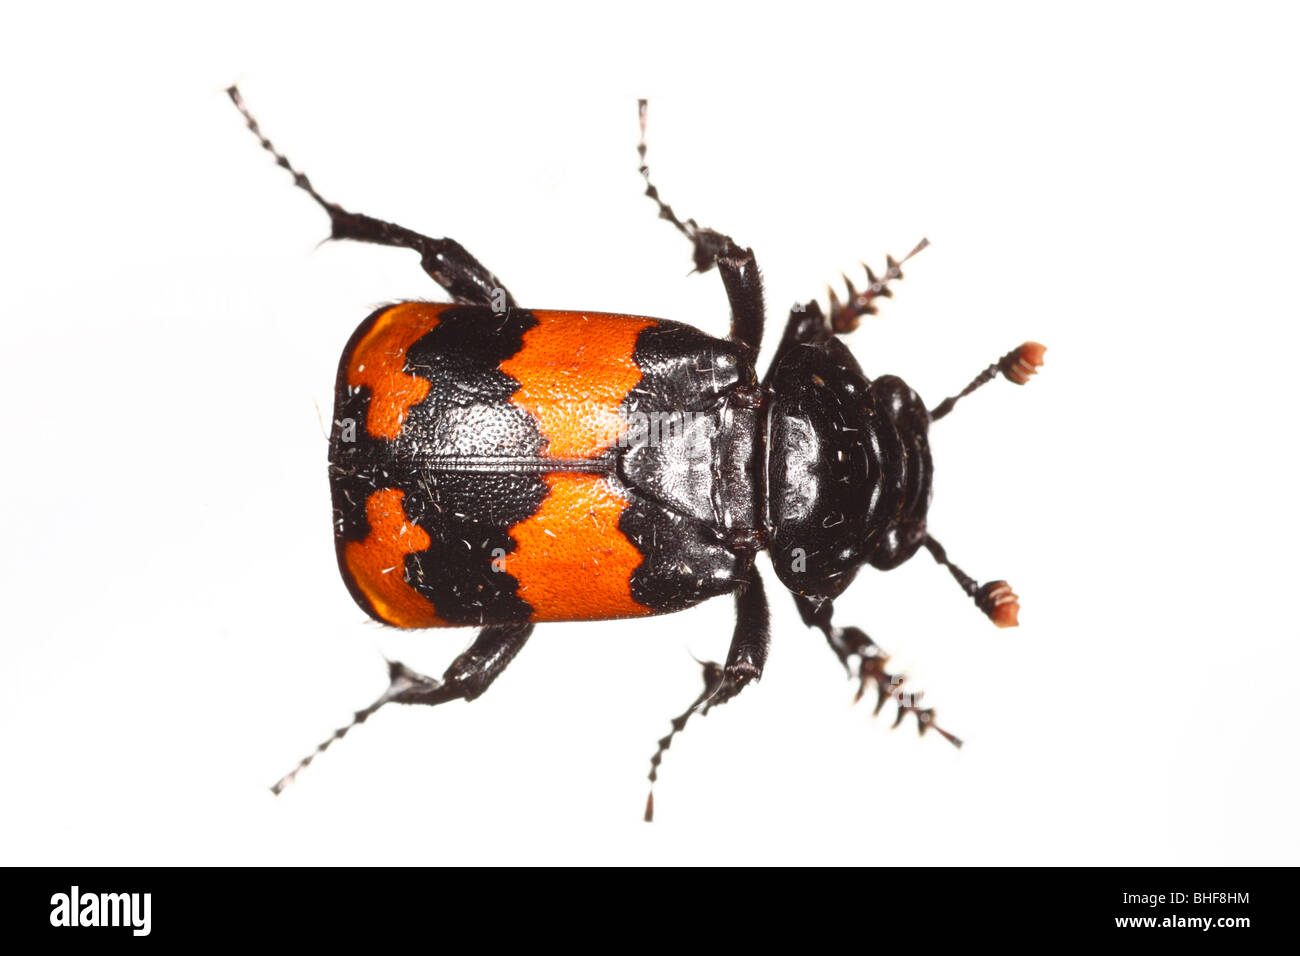 Burying or Sexton beetle (Nicrophorus investigator). Live insect photographed against a white background on a portable - Stock Image